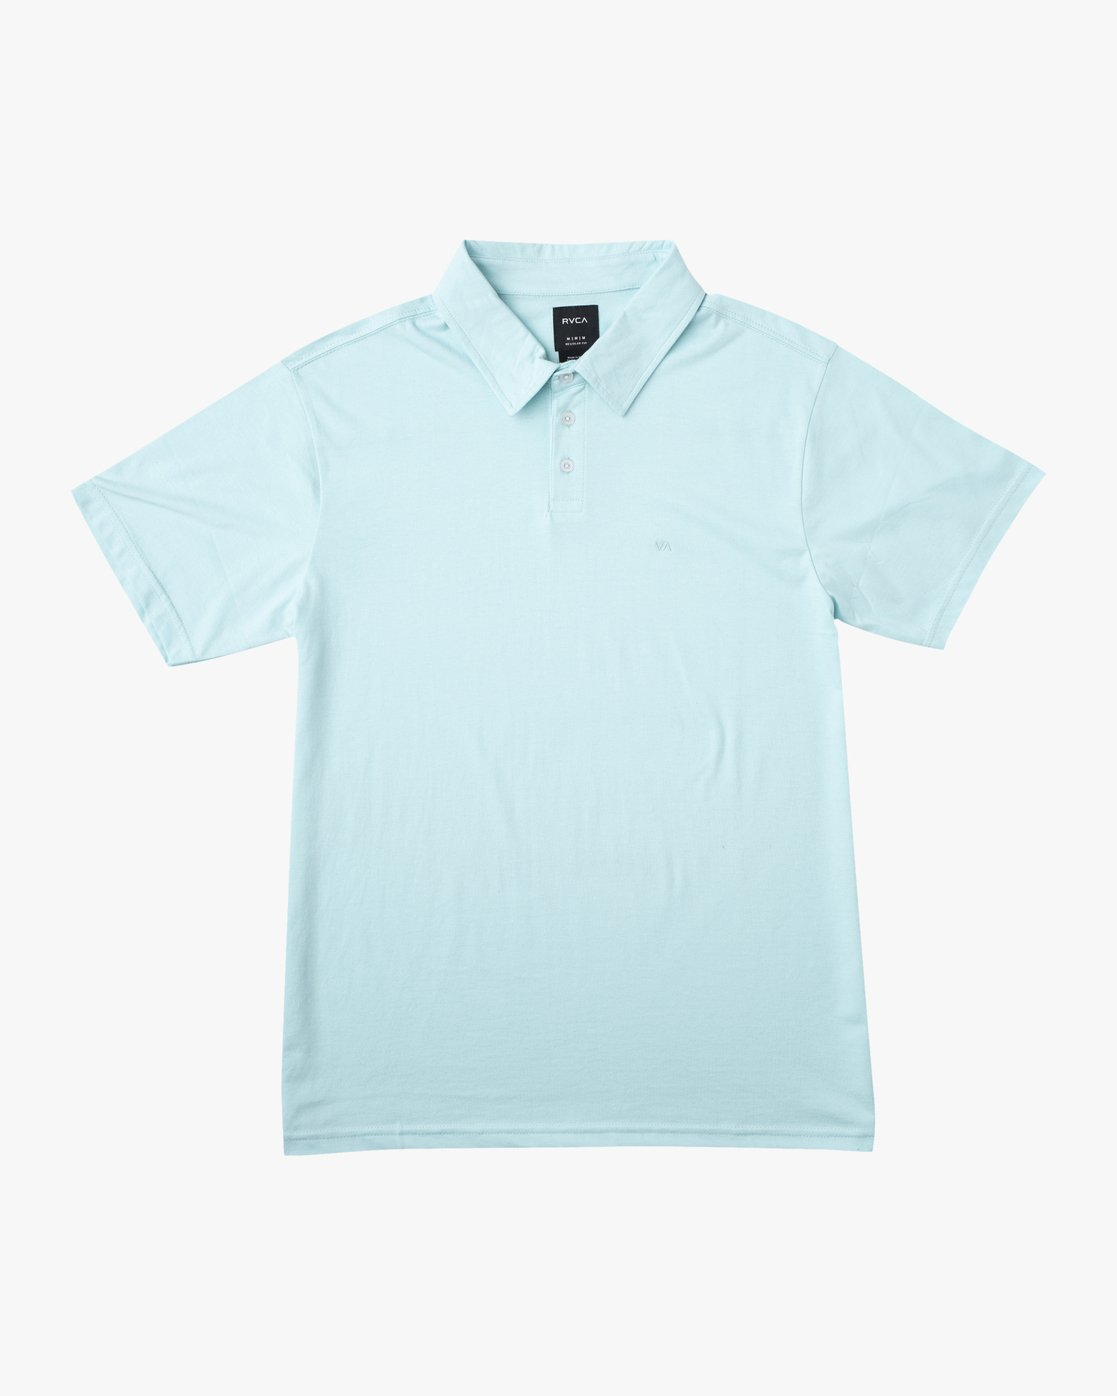 0 SURE THING III POLO SHIRT White M9101RST RVCA